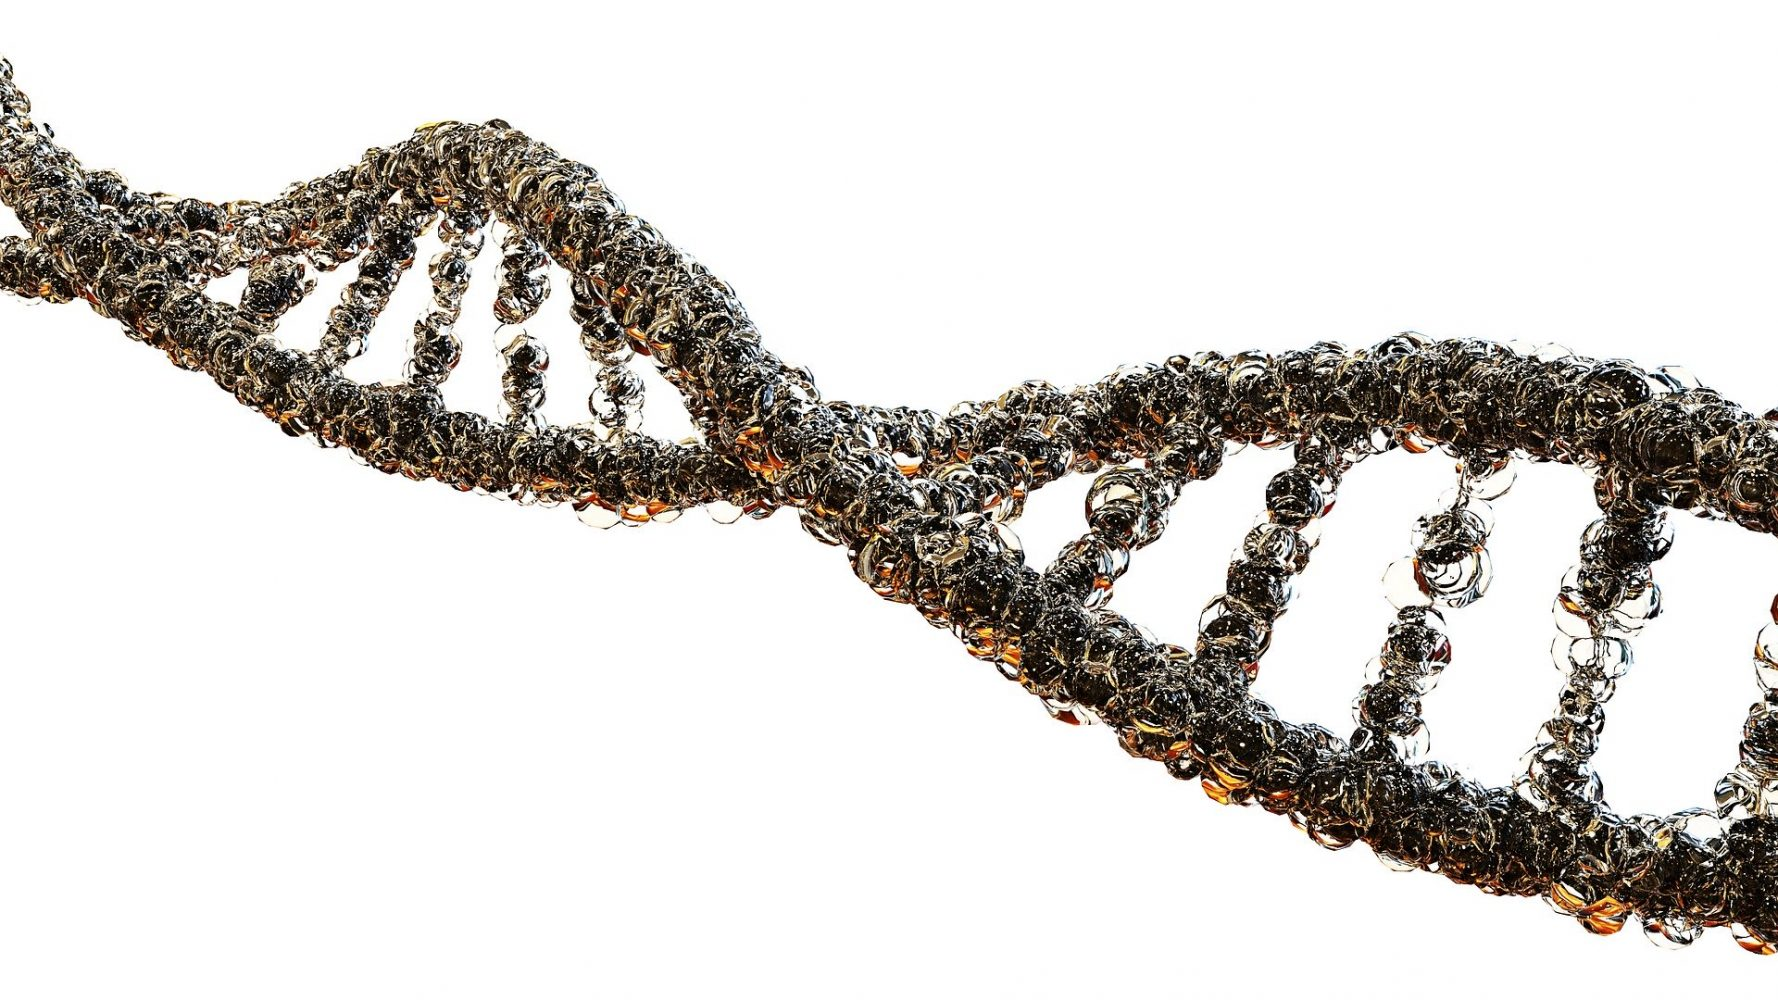 Gene therapy: more science than fiction - Knowledge Factory